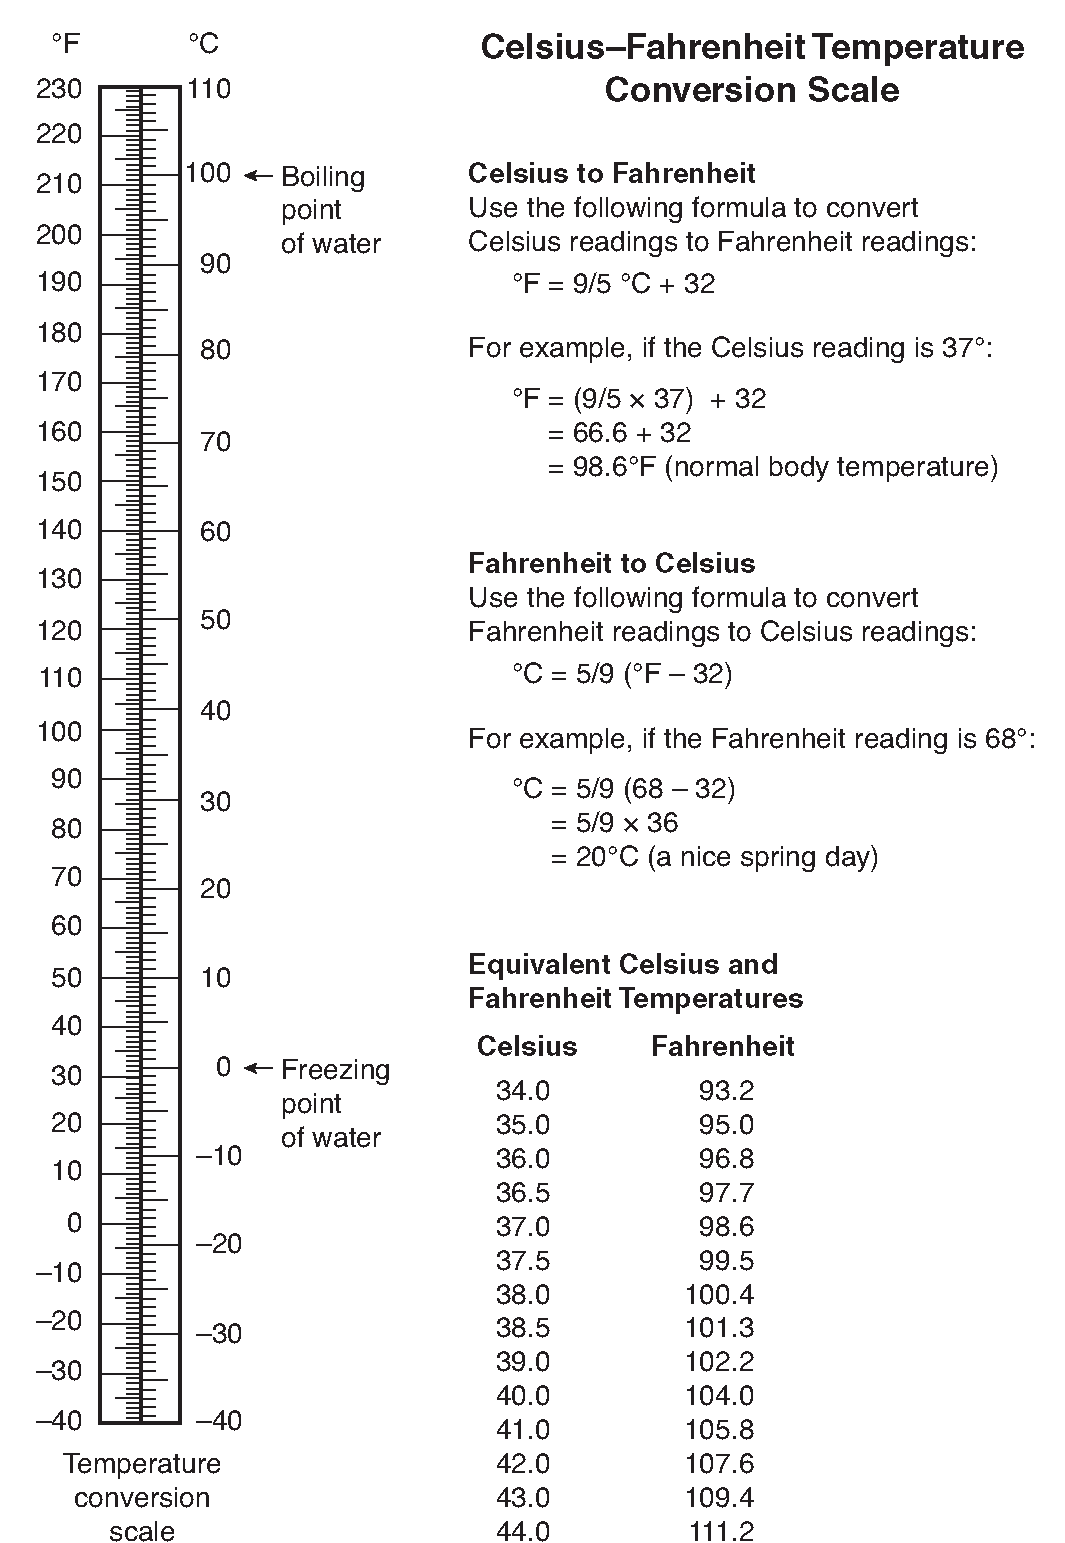 Vital signs client care nursing part 1 celsius and fahrenheit conversions and equivalents nvjuhfo Images